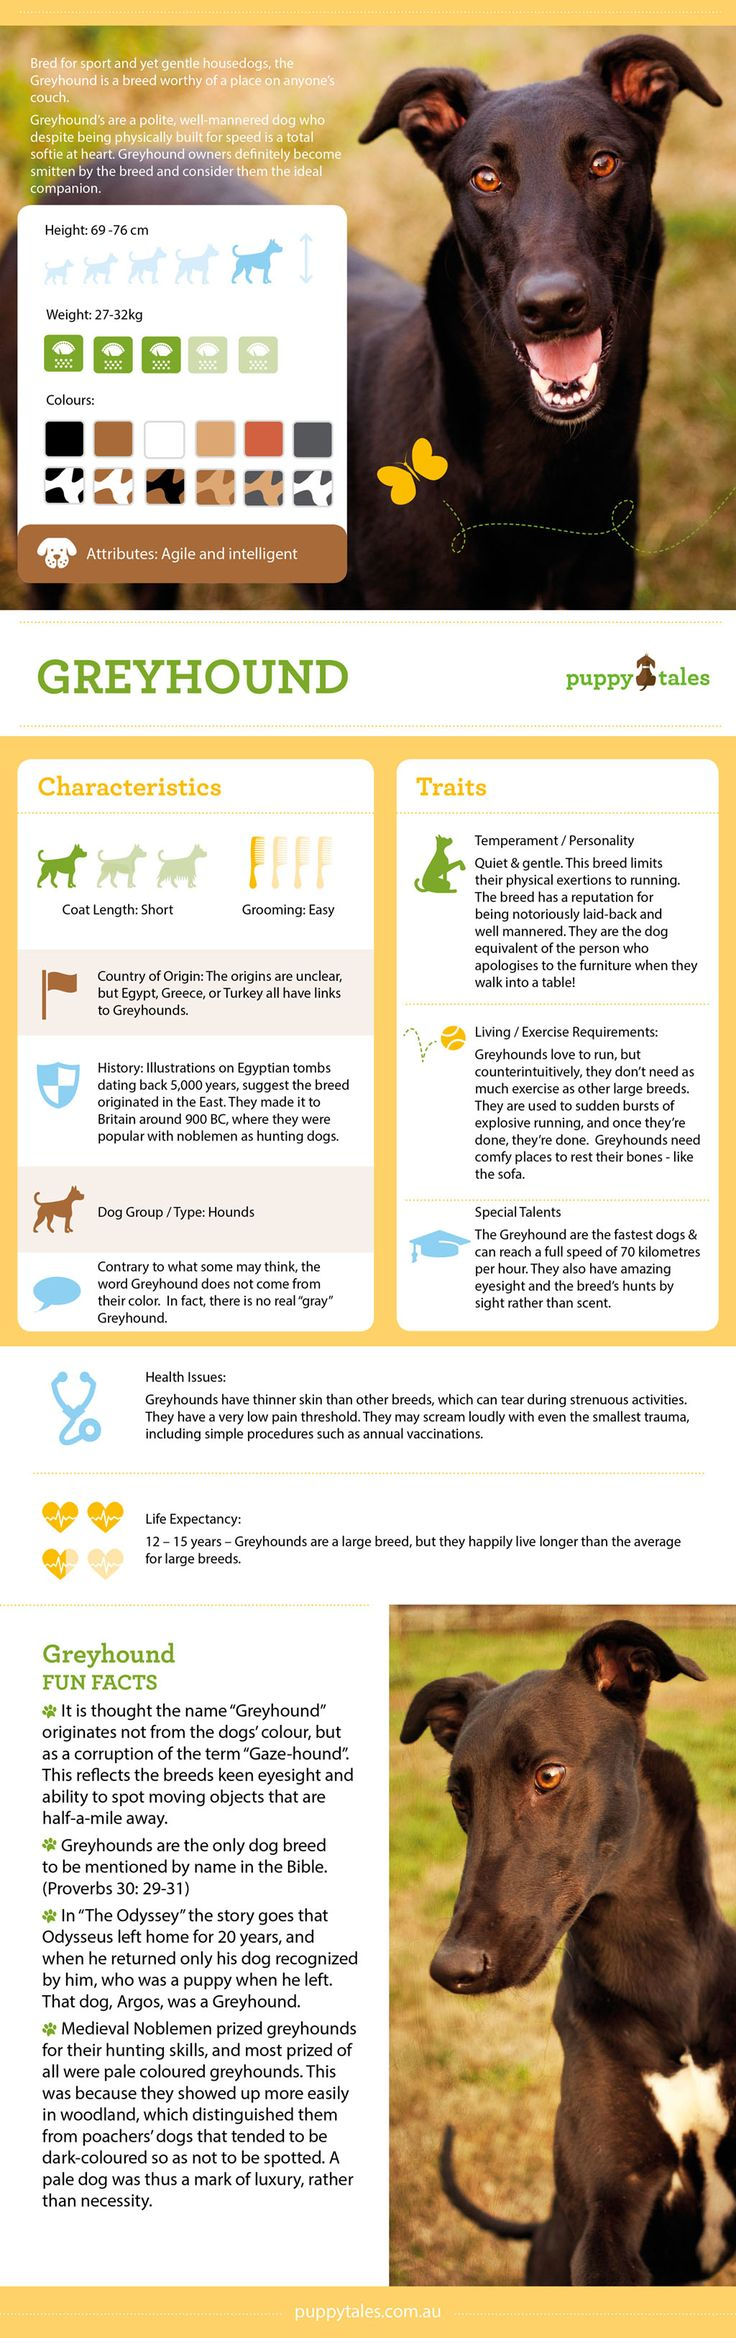 Greyhound Breed Profile & Style File on Puppy Tales